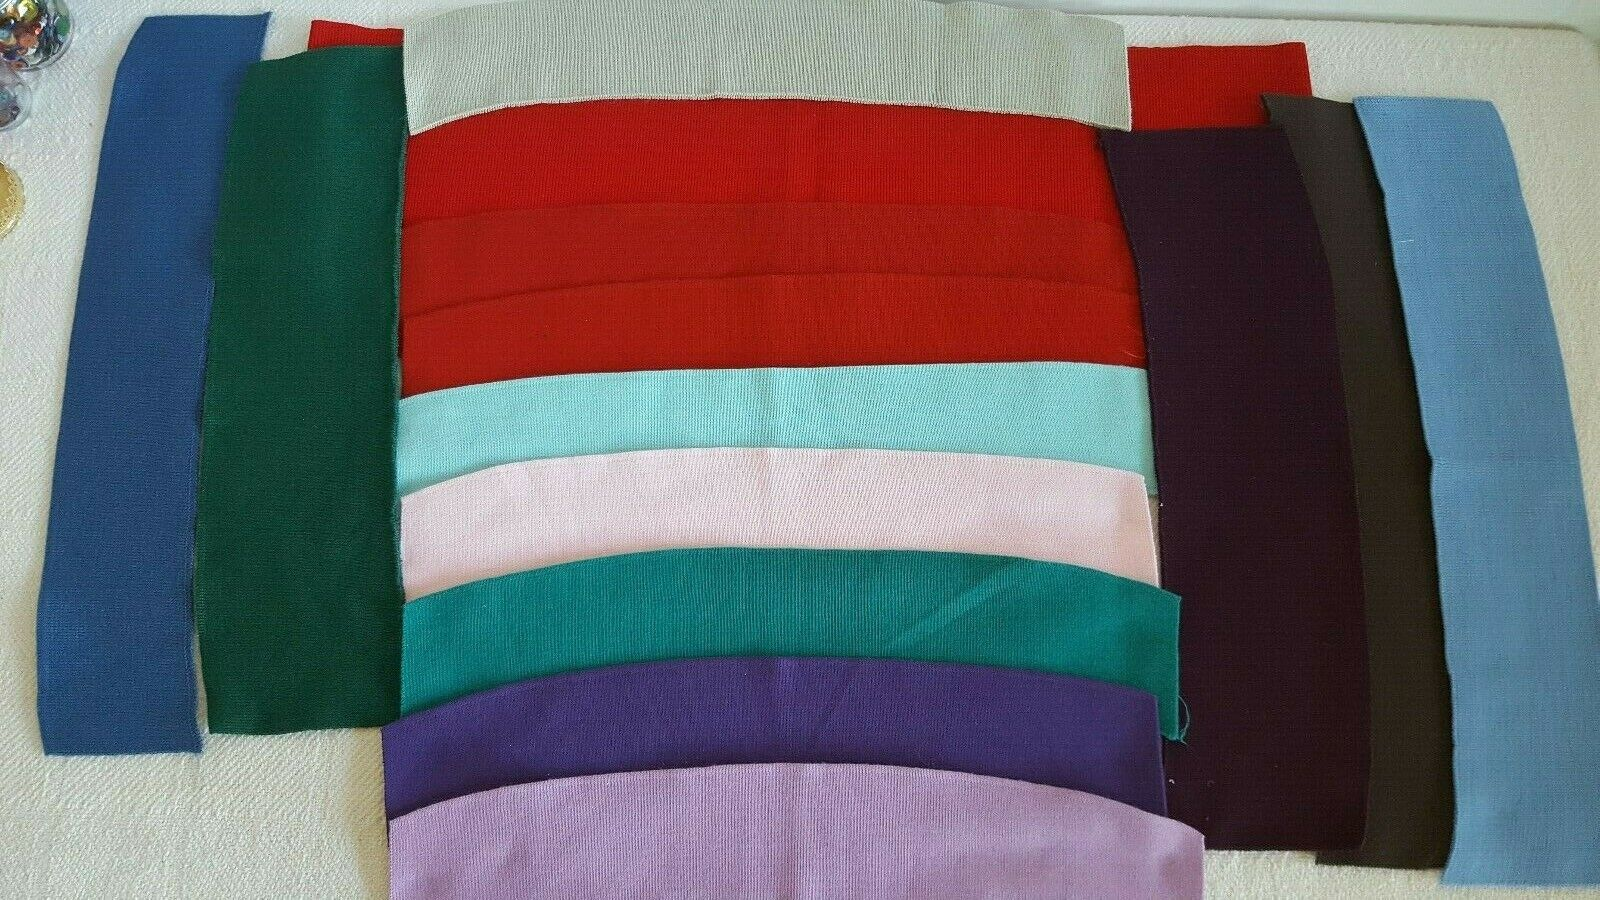 Vintage 1990s Knitted Collar Sleeve Trim For Sewing Shirts Sweaters And More - $14.99